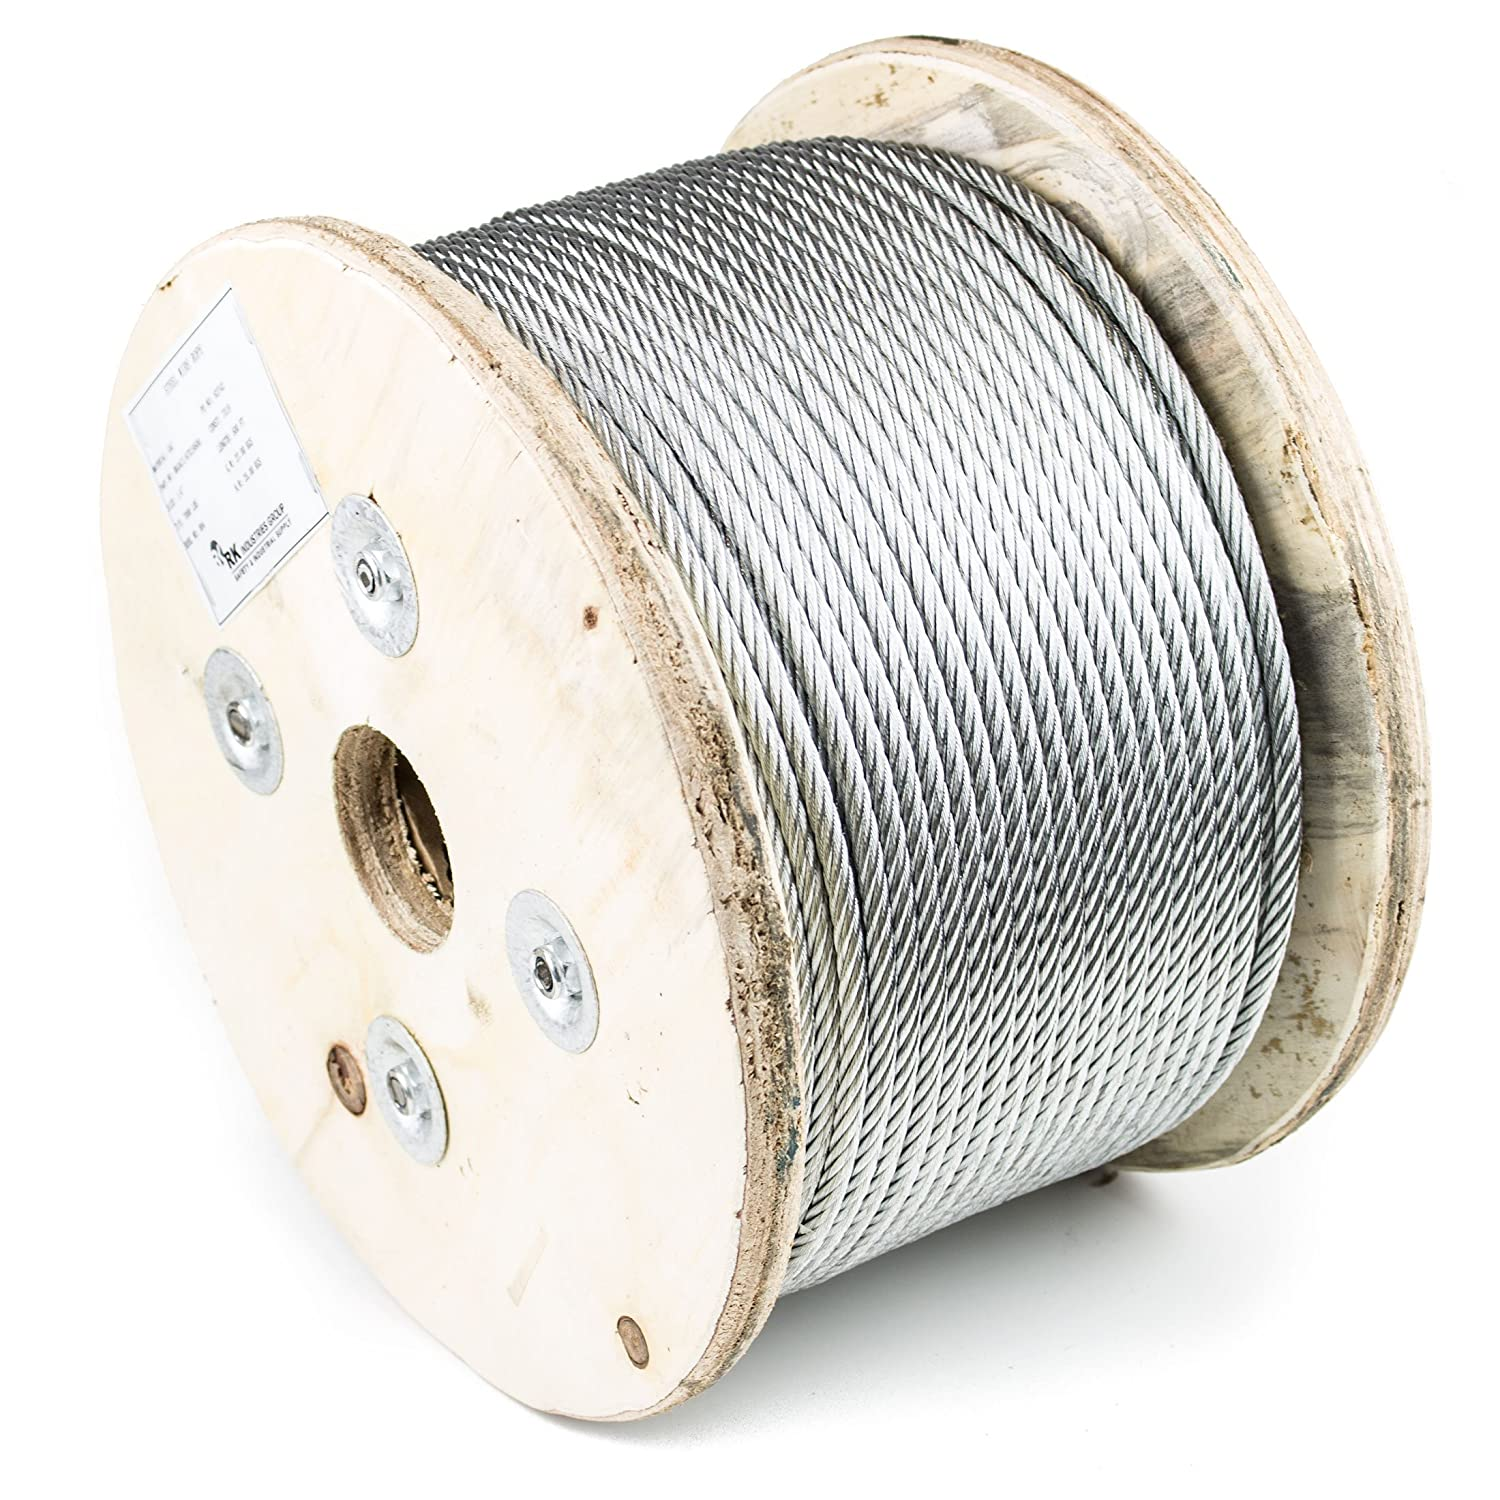 RK Wire Rope, 7x19 Galvanized Aircraft Steel Cable, 1/4-Inch, 500 ...